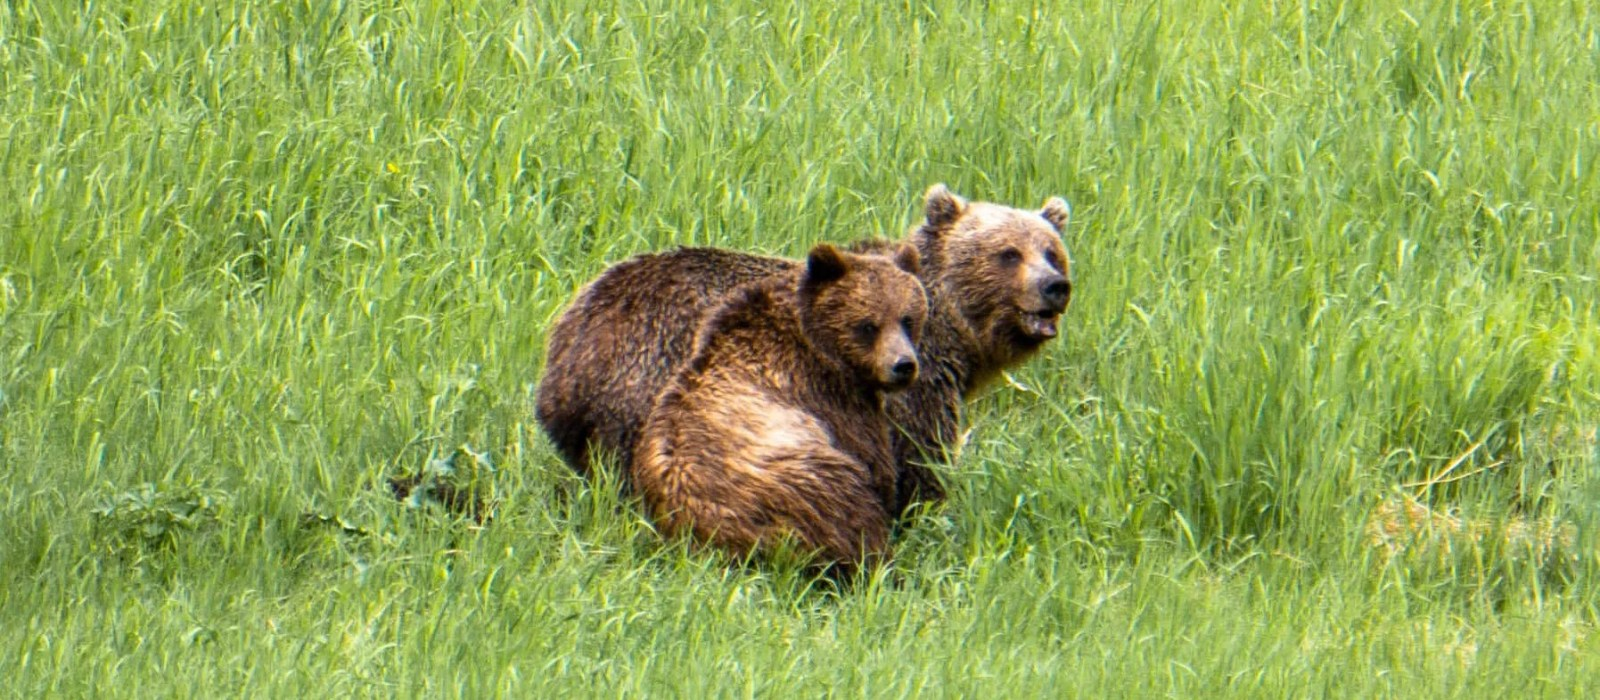 A Grizzly Bear Encounter in The Wild